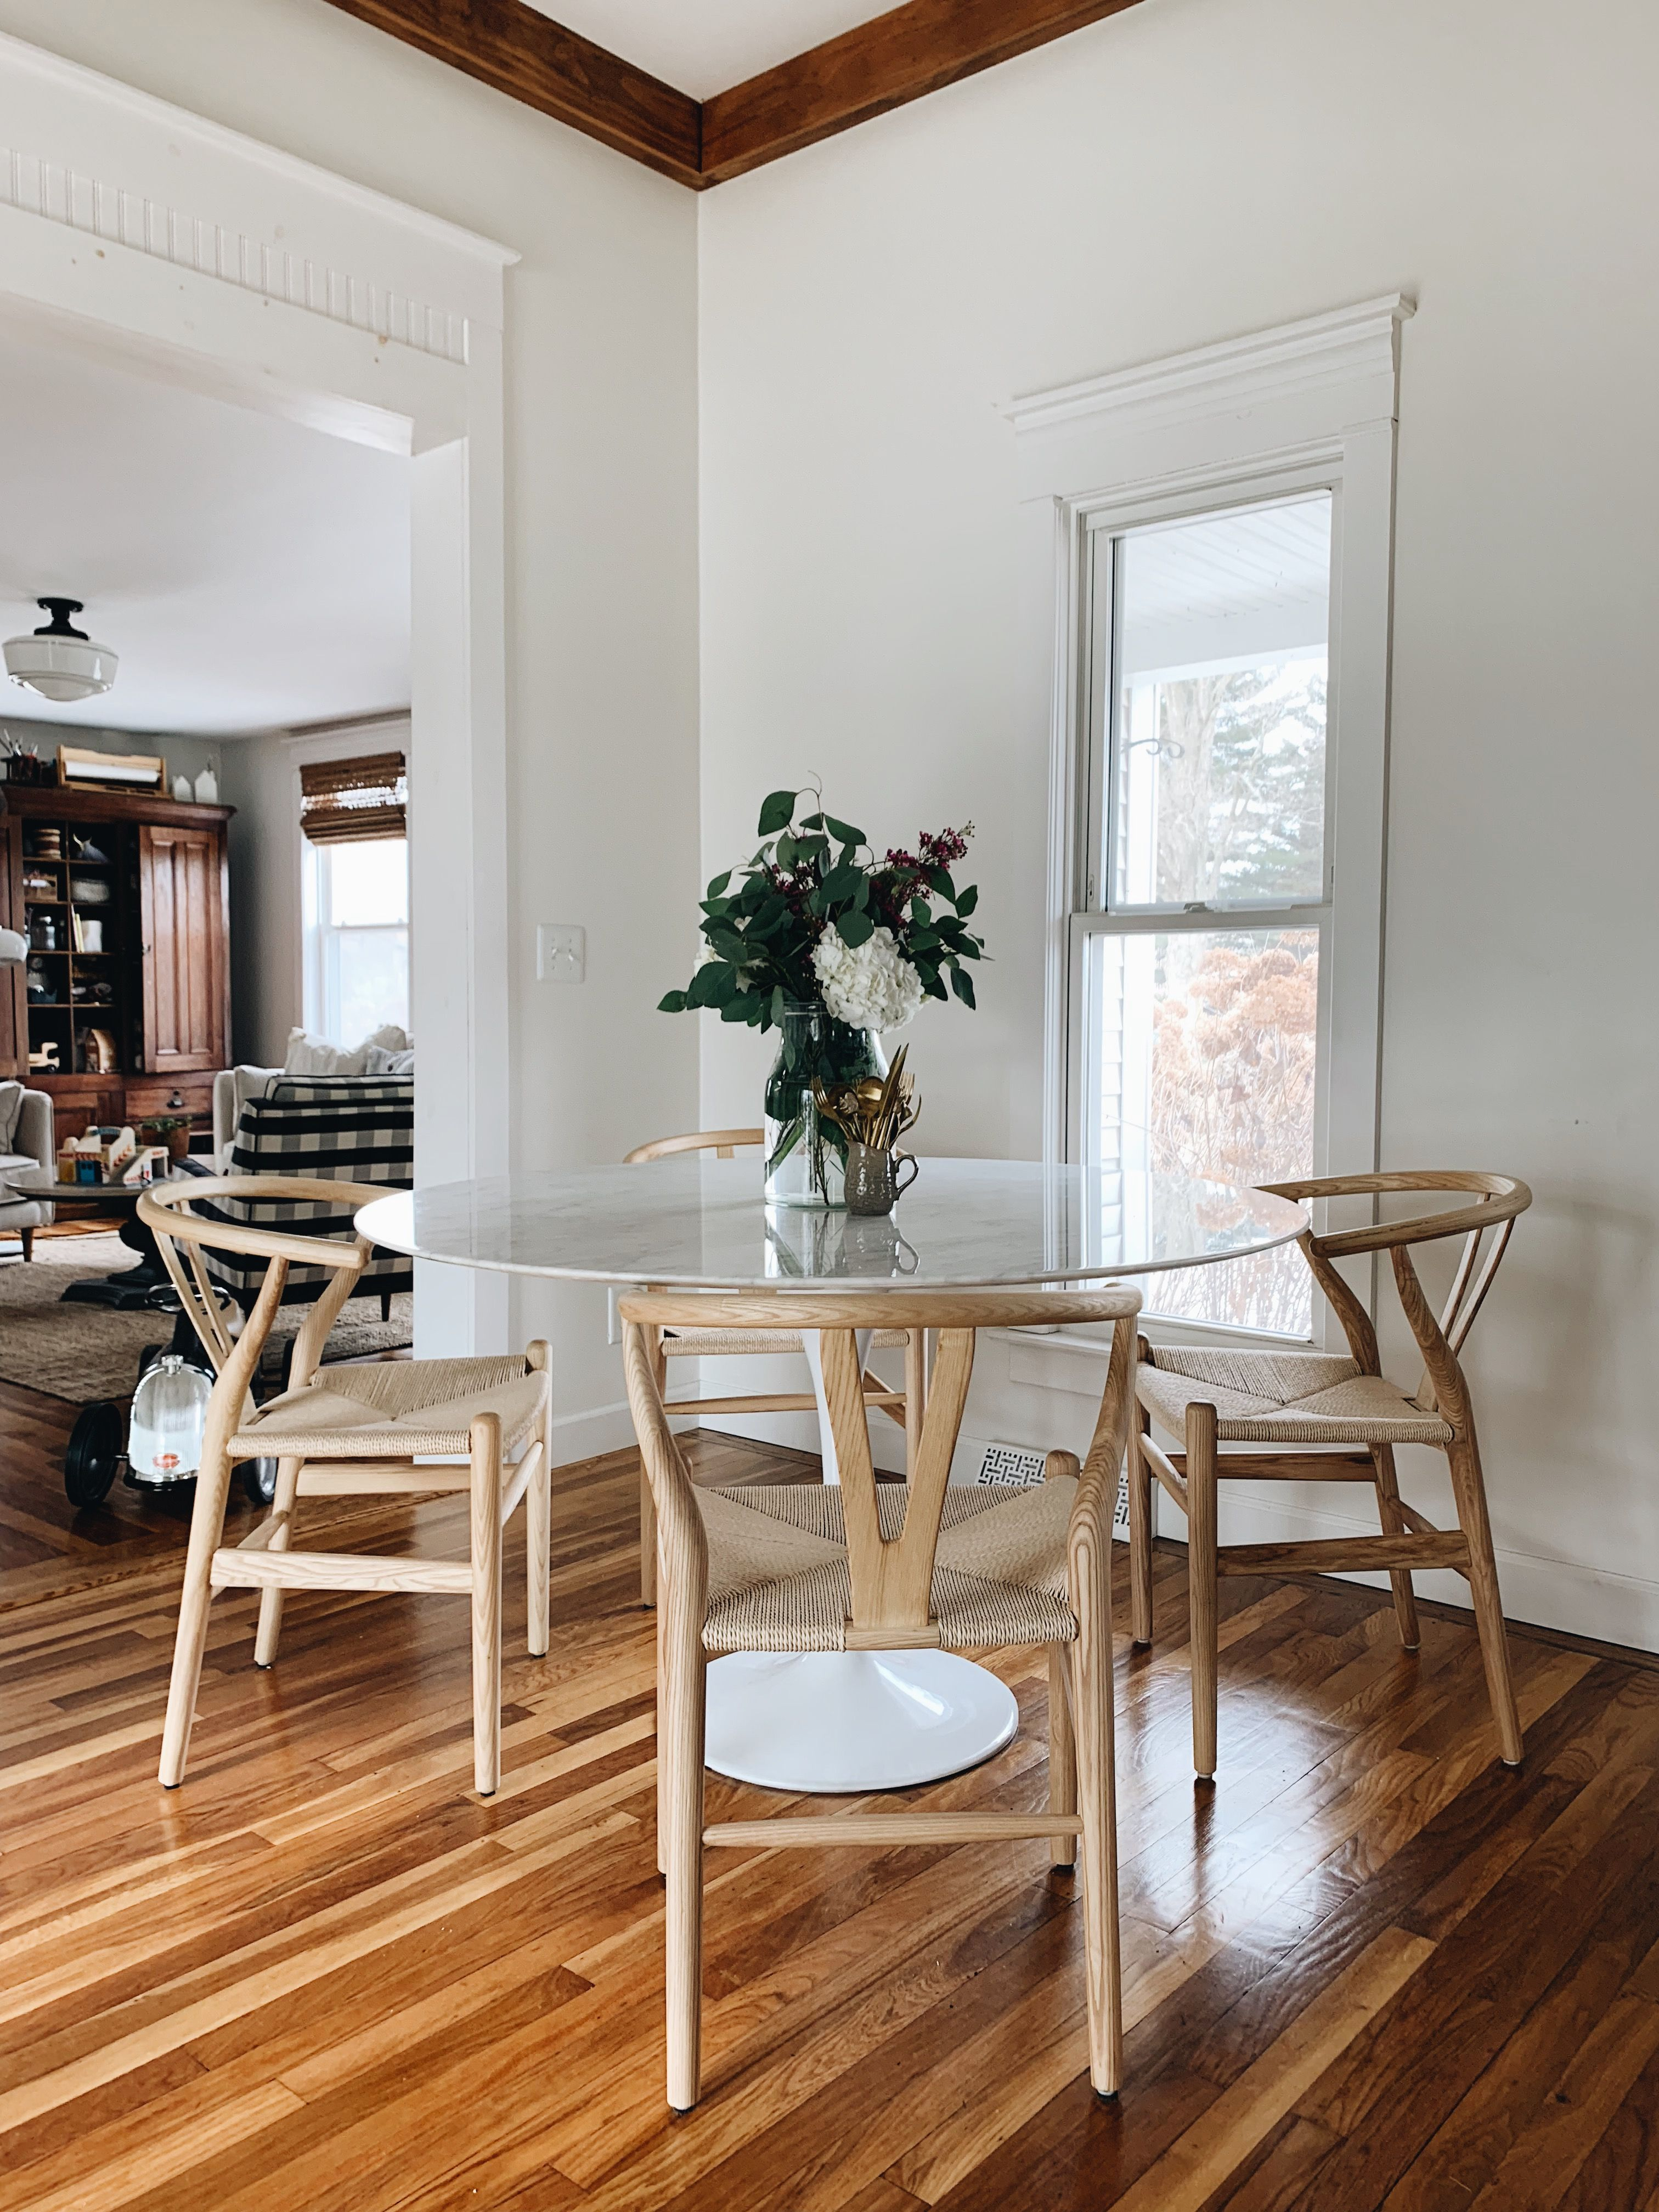 Wishbone Dining Chair Wishbone Chairs In Natural Tulip Table Basement In 2019 Tulip